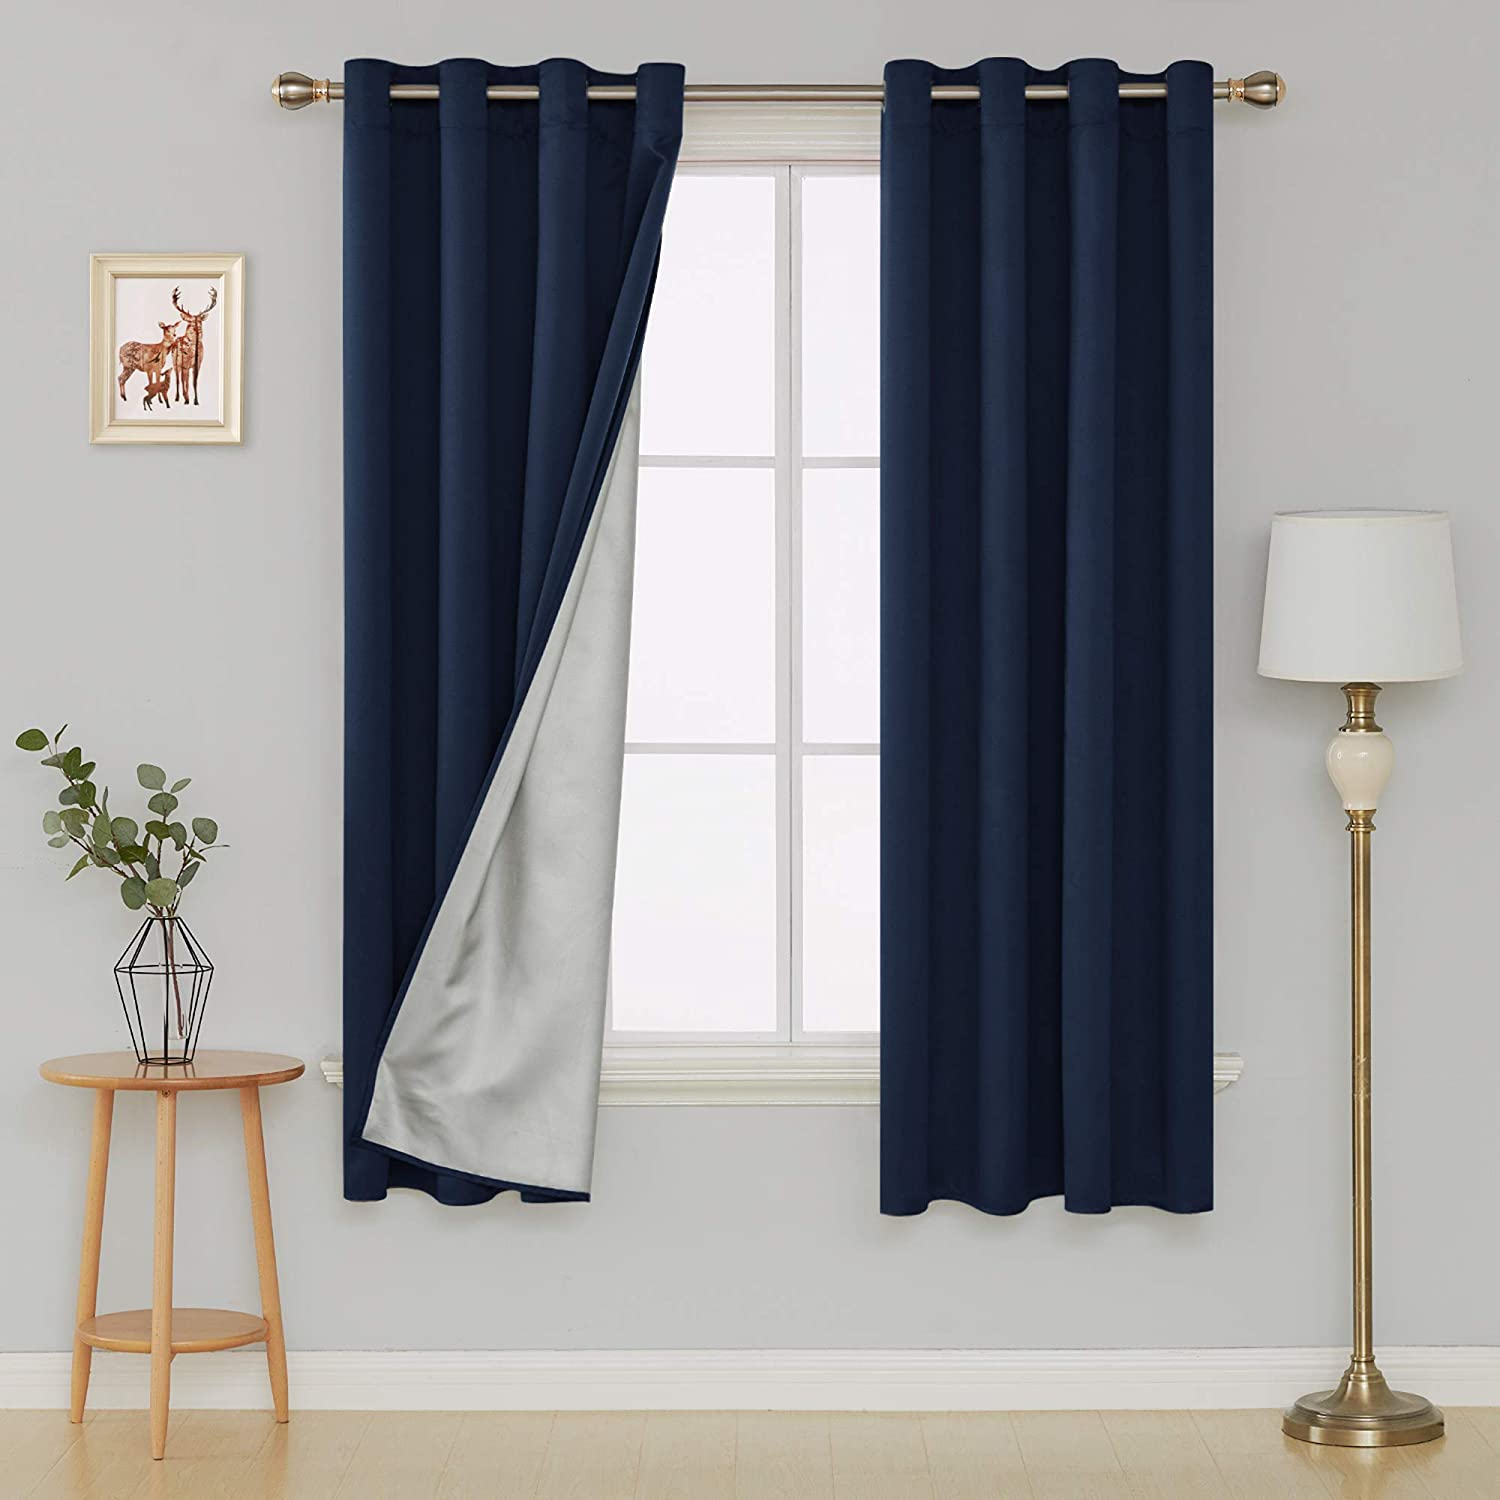 Deconovo Room Darkening Thermal Insulated Blackout Curtains Grommet Top Energy Efficient Silver Back Coating Drapes for Living Room 52 by 72 Inch Navy Blue 2 Panels